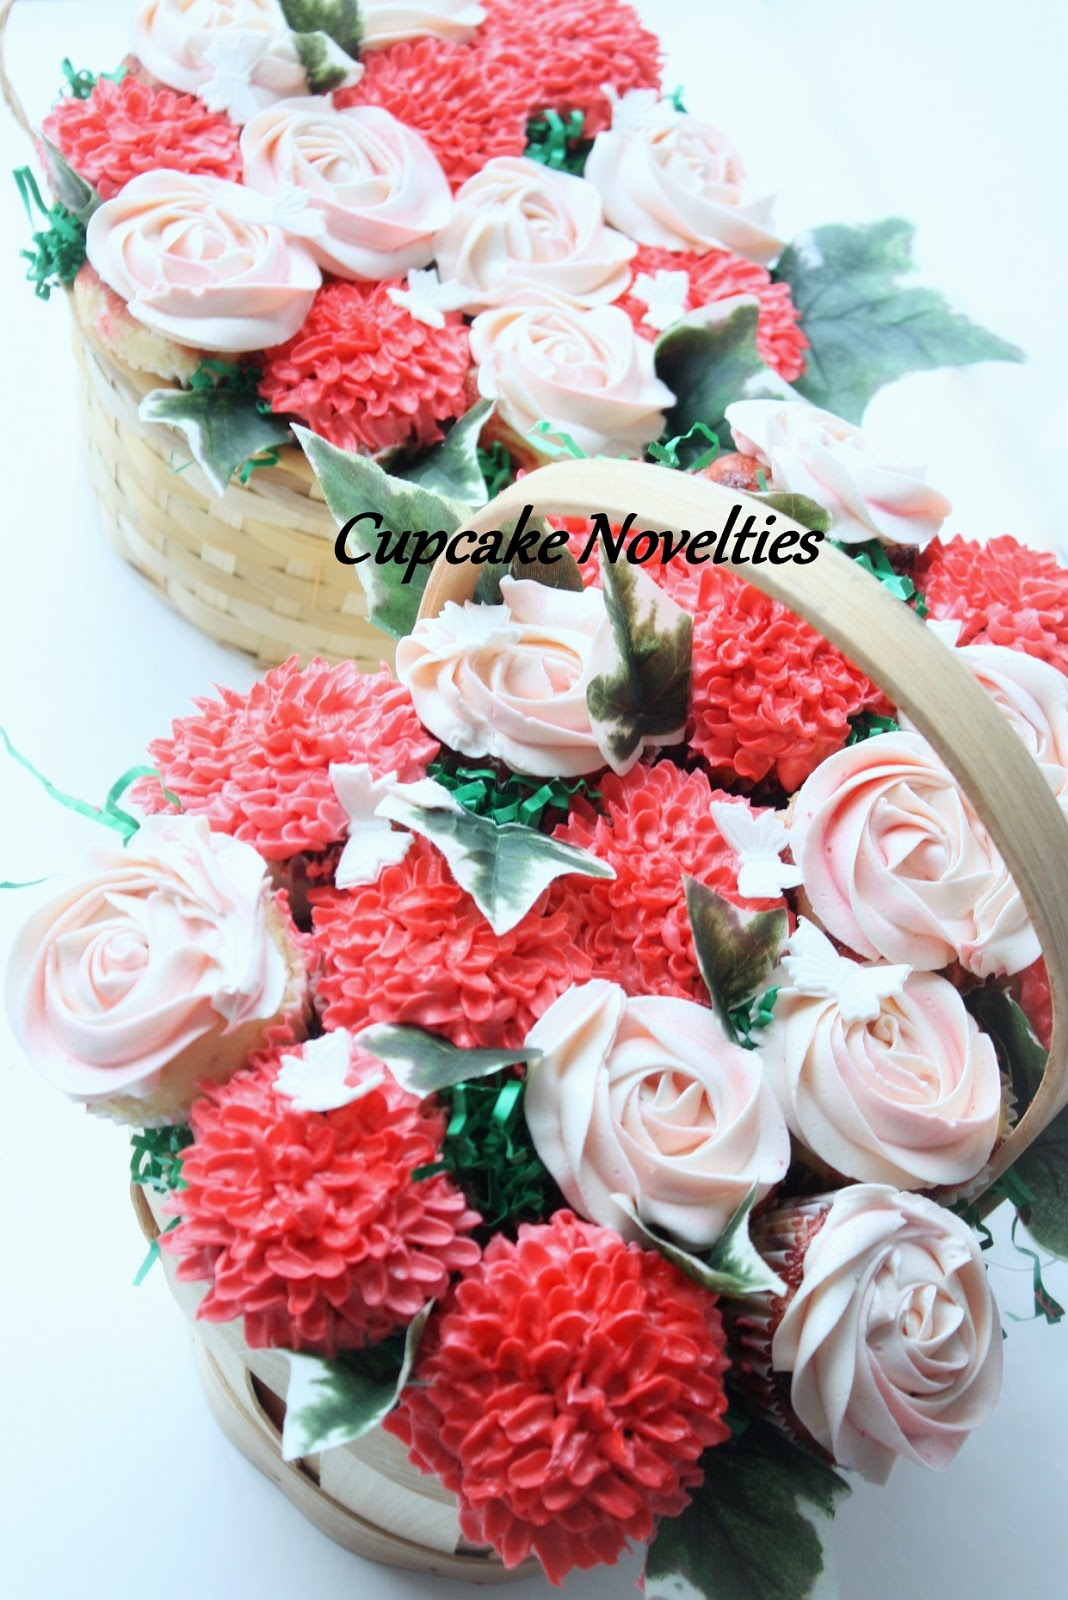 Cupcake novelties cakes cupcakes wedding cakes cake pops cupcake bouquets roses mums flower delivery in northern virginia fairfax ashburn sterling reston herndon chantilly izmirmasajfo Choice Image